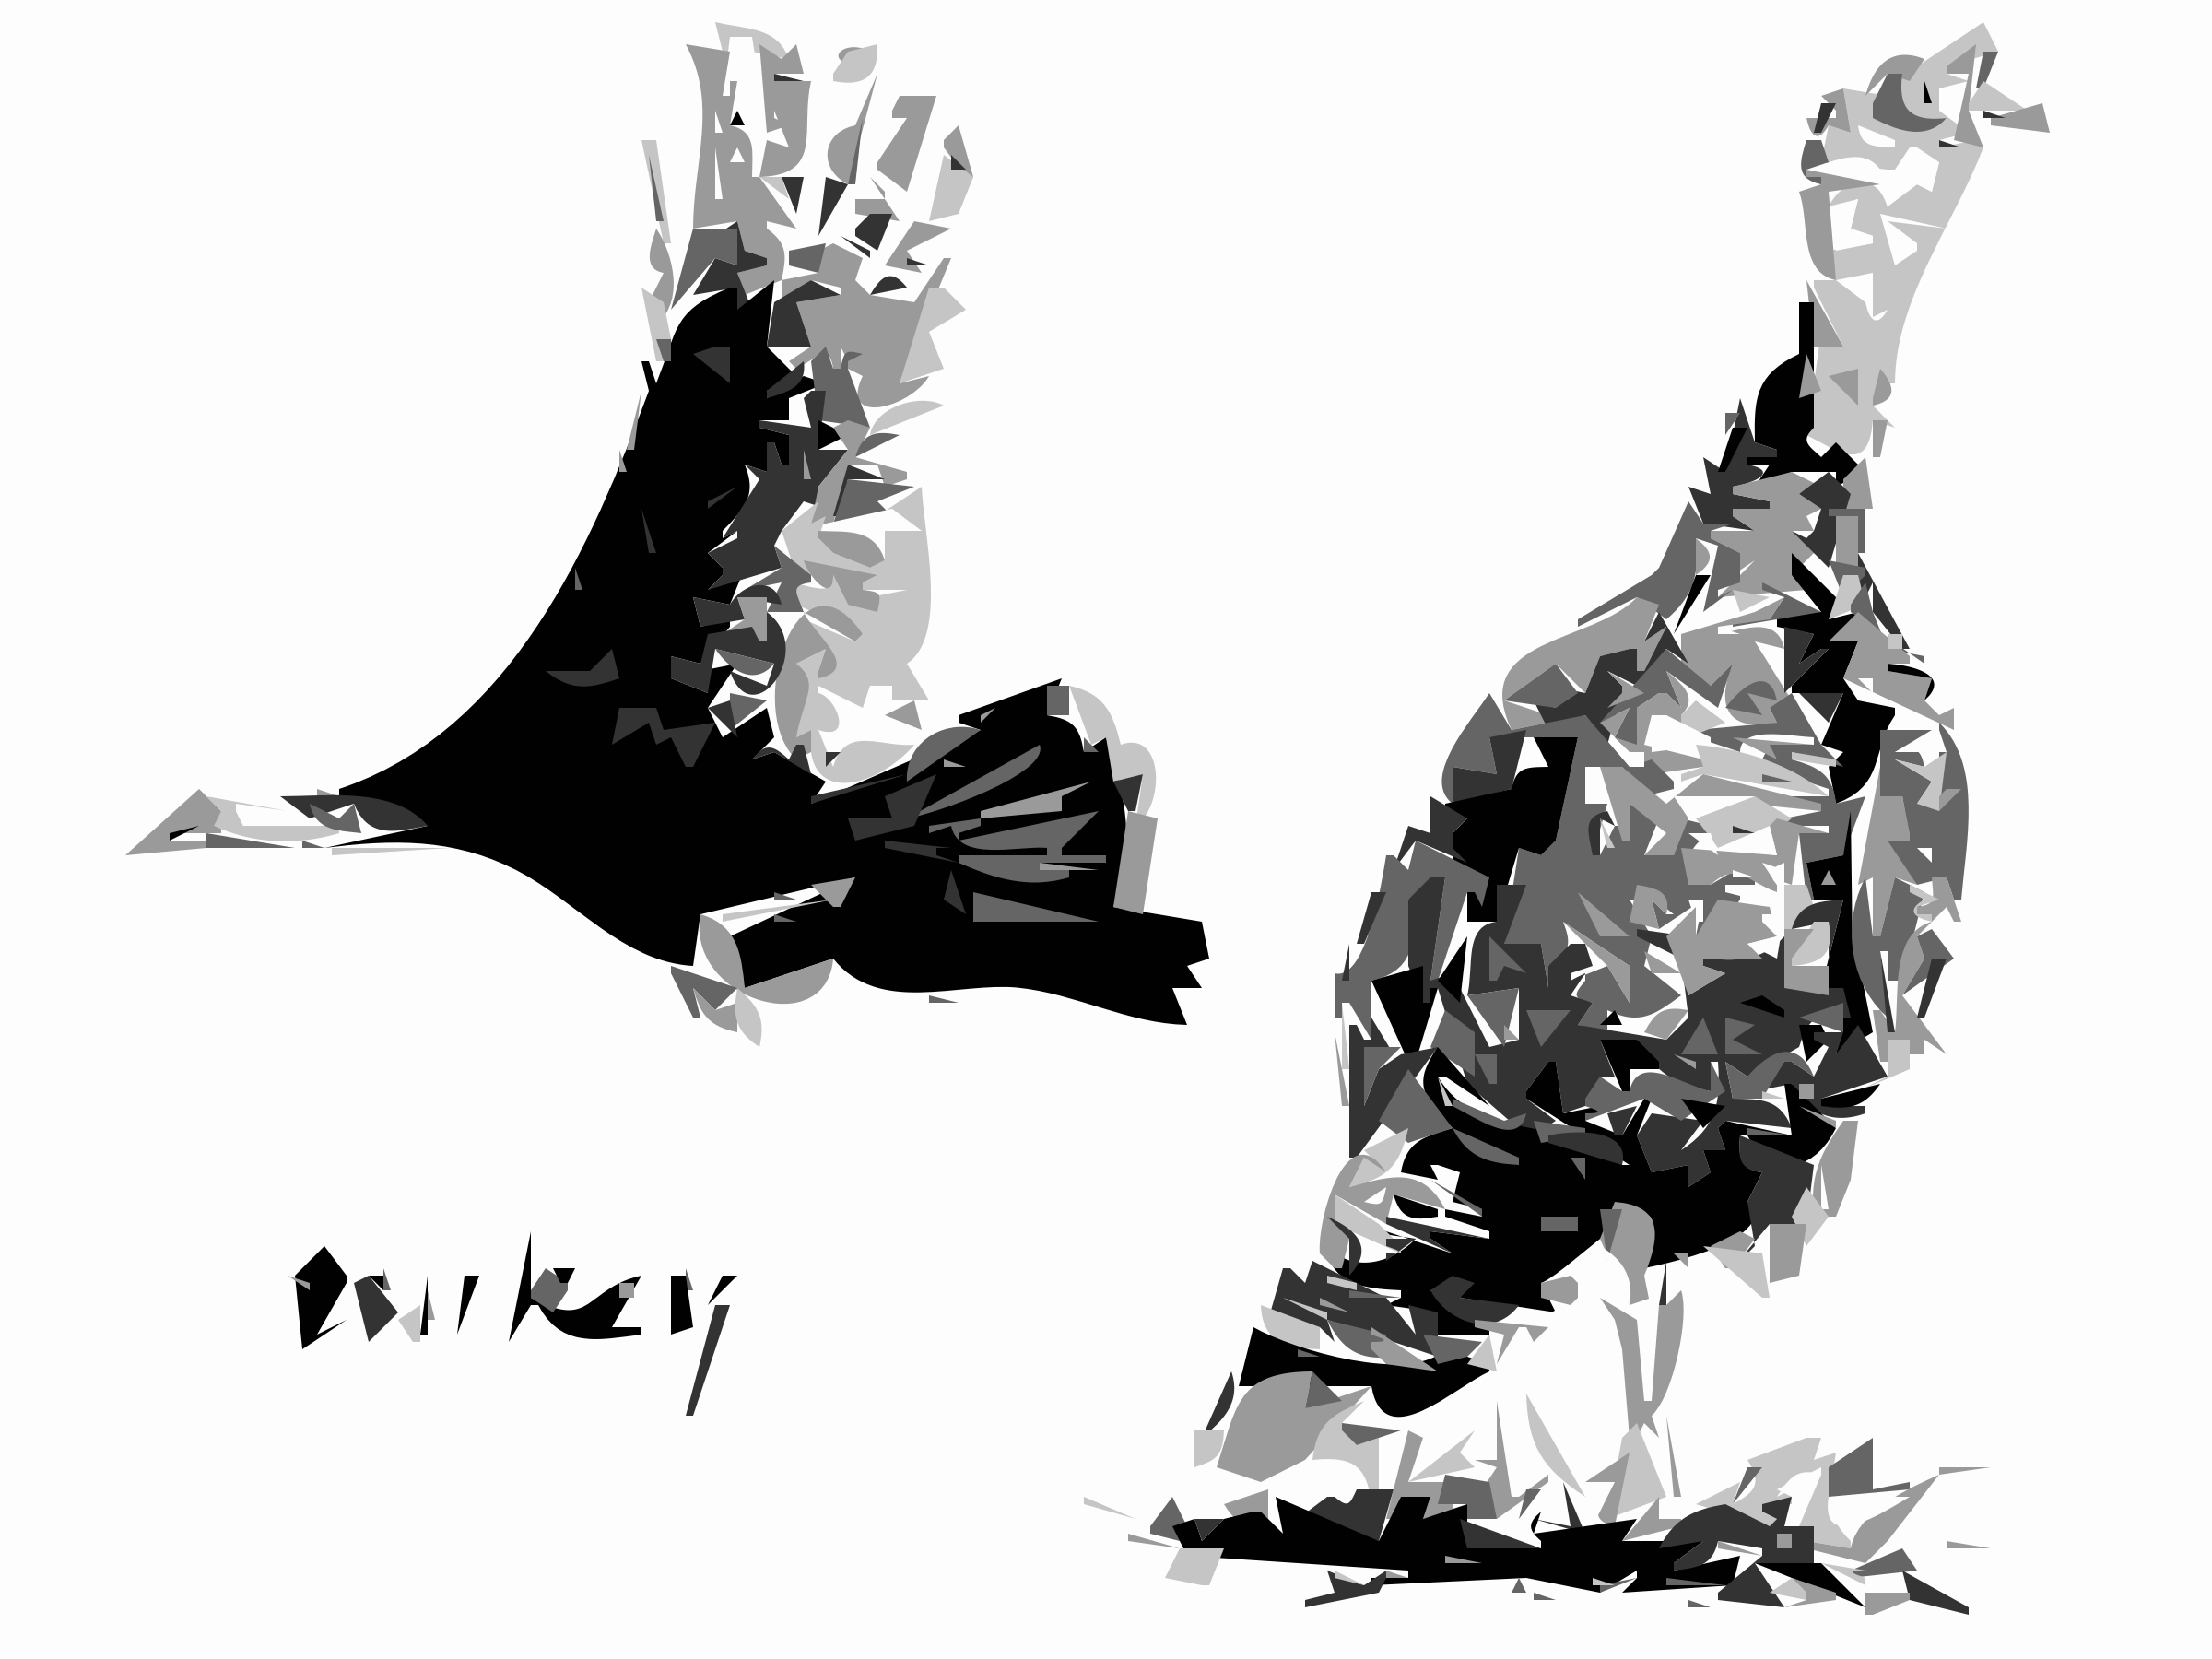 2 Turkey Birds by worldlabel